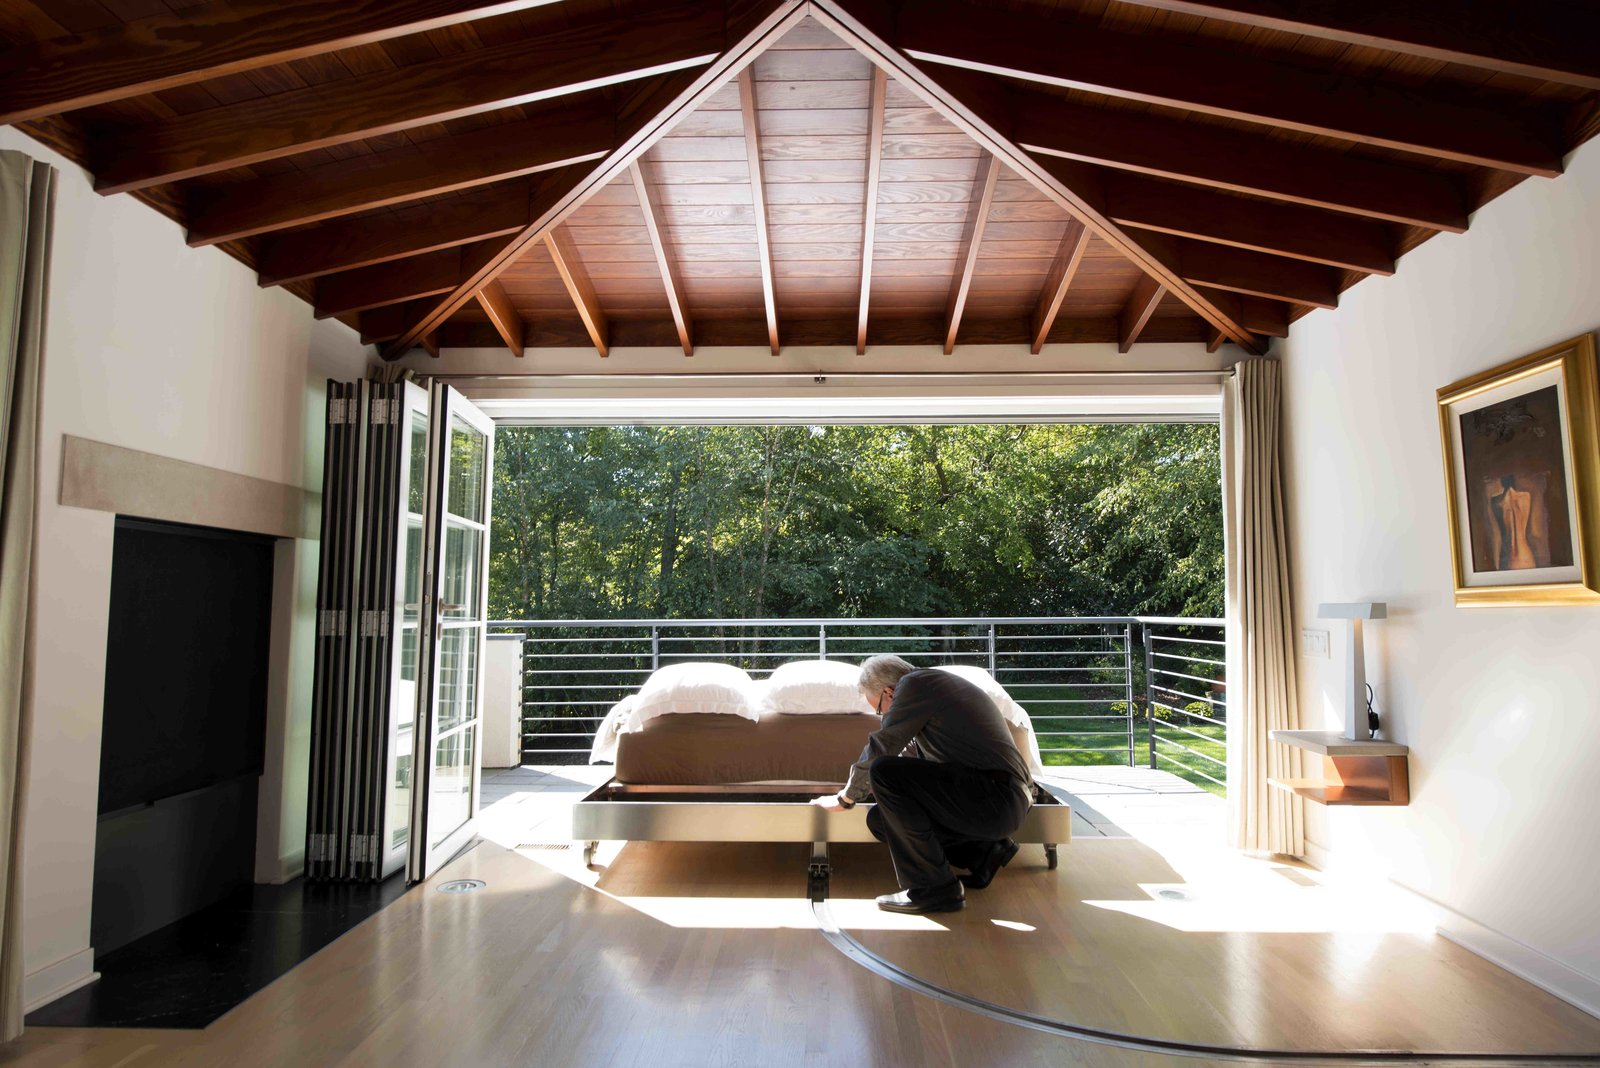 With a gentle nudge, architect John Senhauser pushes a custom bed outside onto the terrace. The bed travels along a metal track set into the white-oak floor. The ceiling rafters are Douglas fir.  Bedrooms by Dwell from The Ultimate Indoor-Outdoor Bedroom